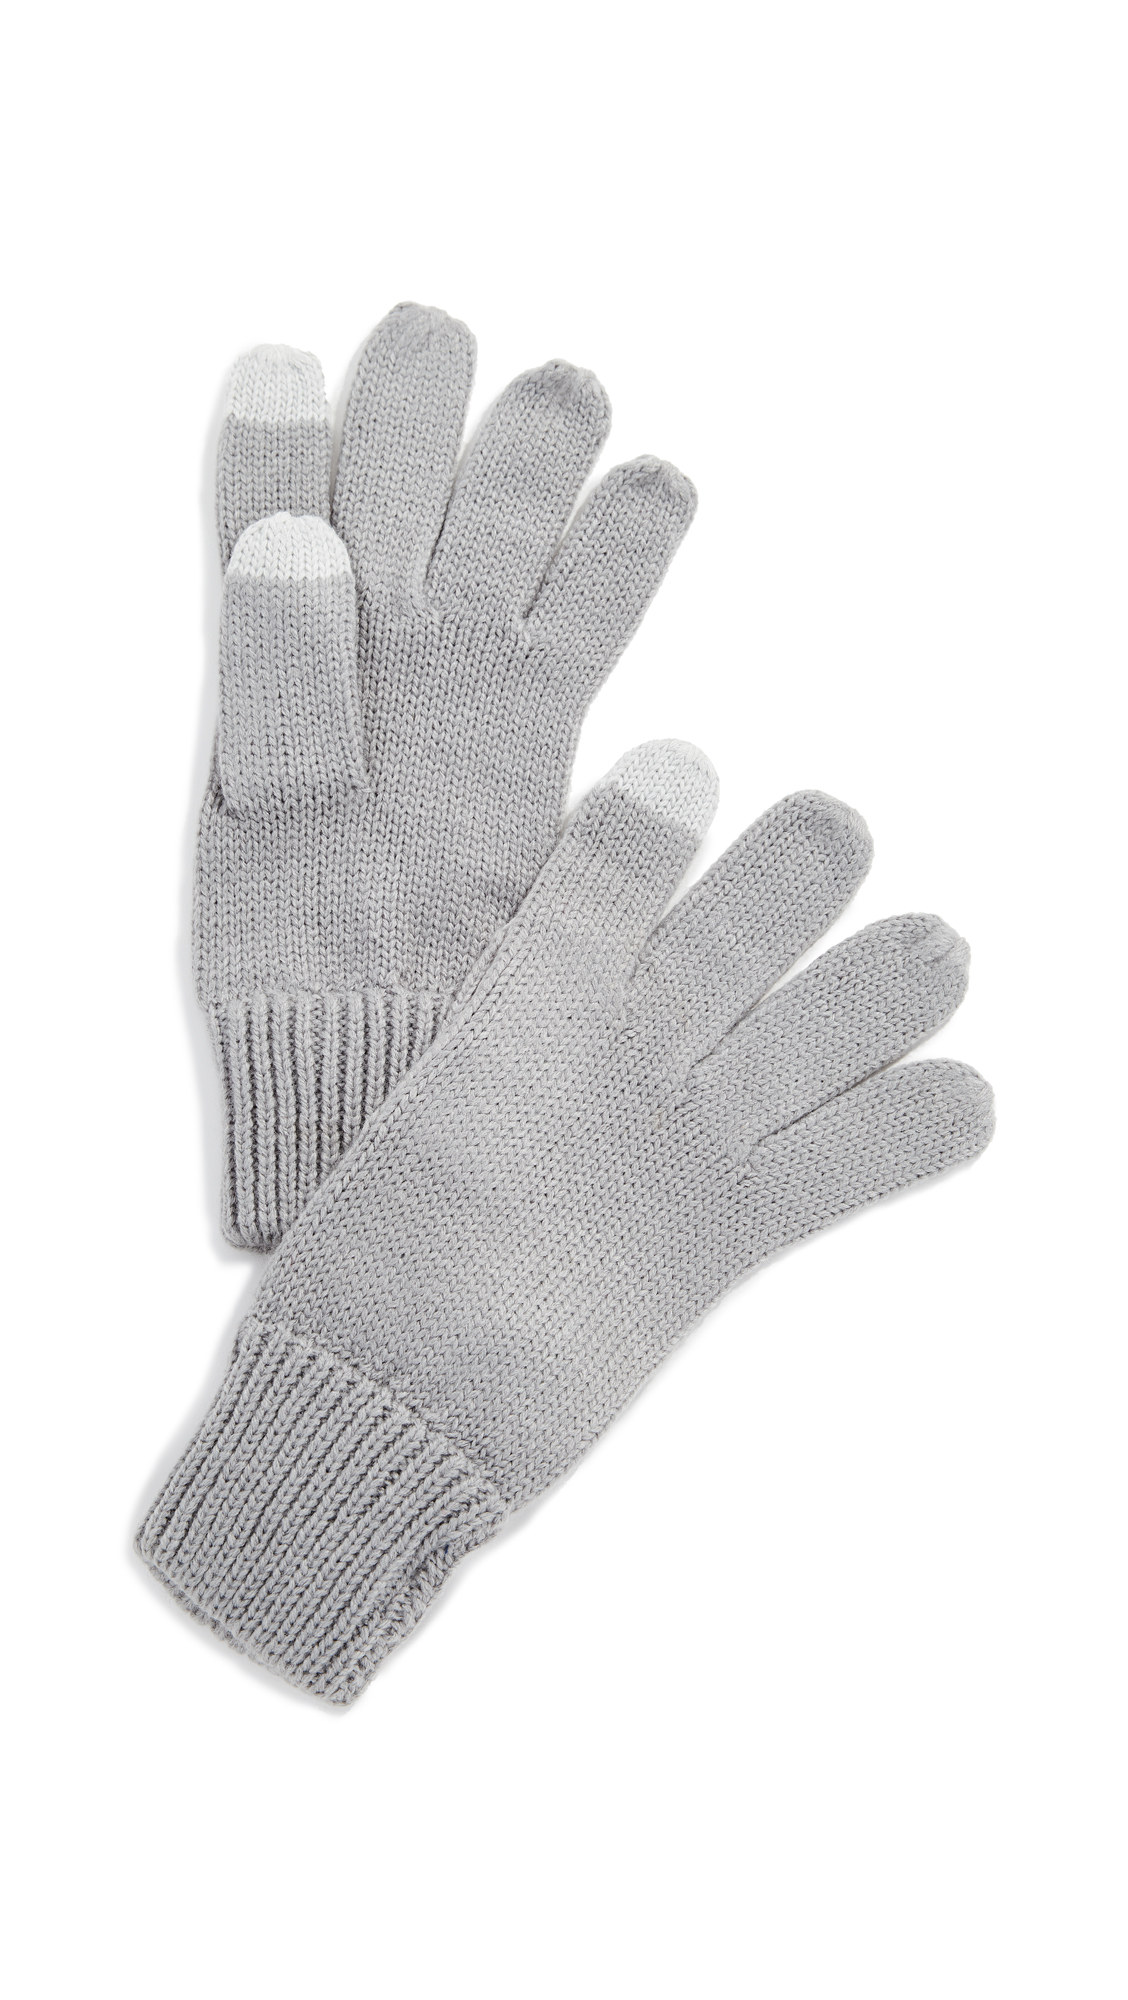 HAT ATTACK Basic Texting Gloves in Grey